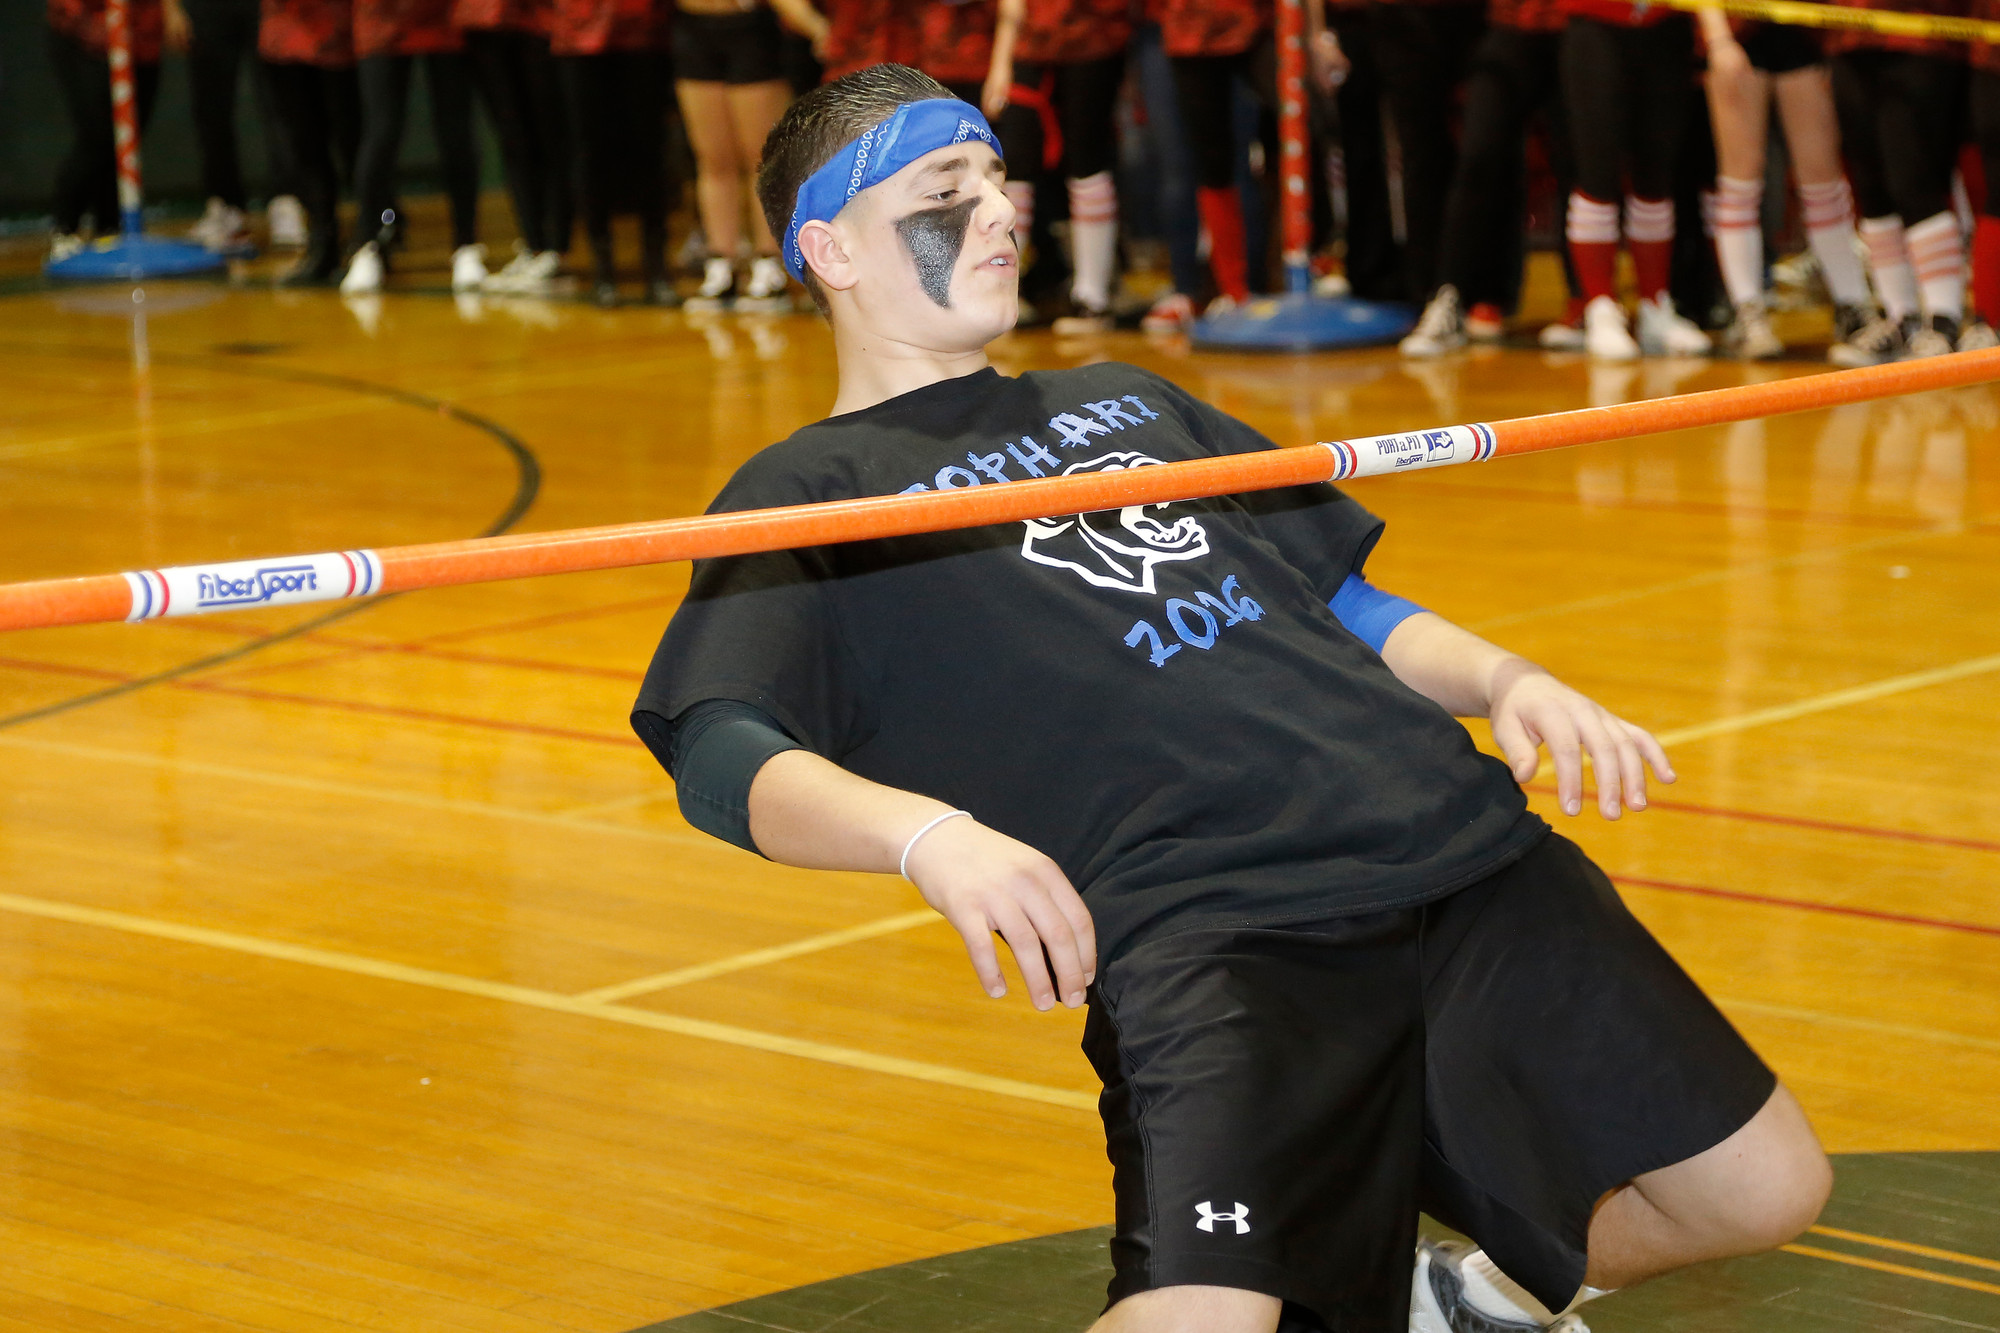 Sophomore Nino Rocalbuto shimmied under the limbo bar.